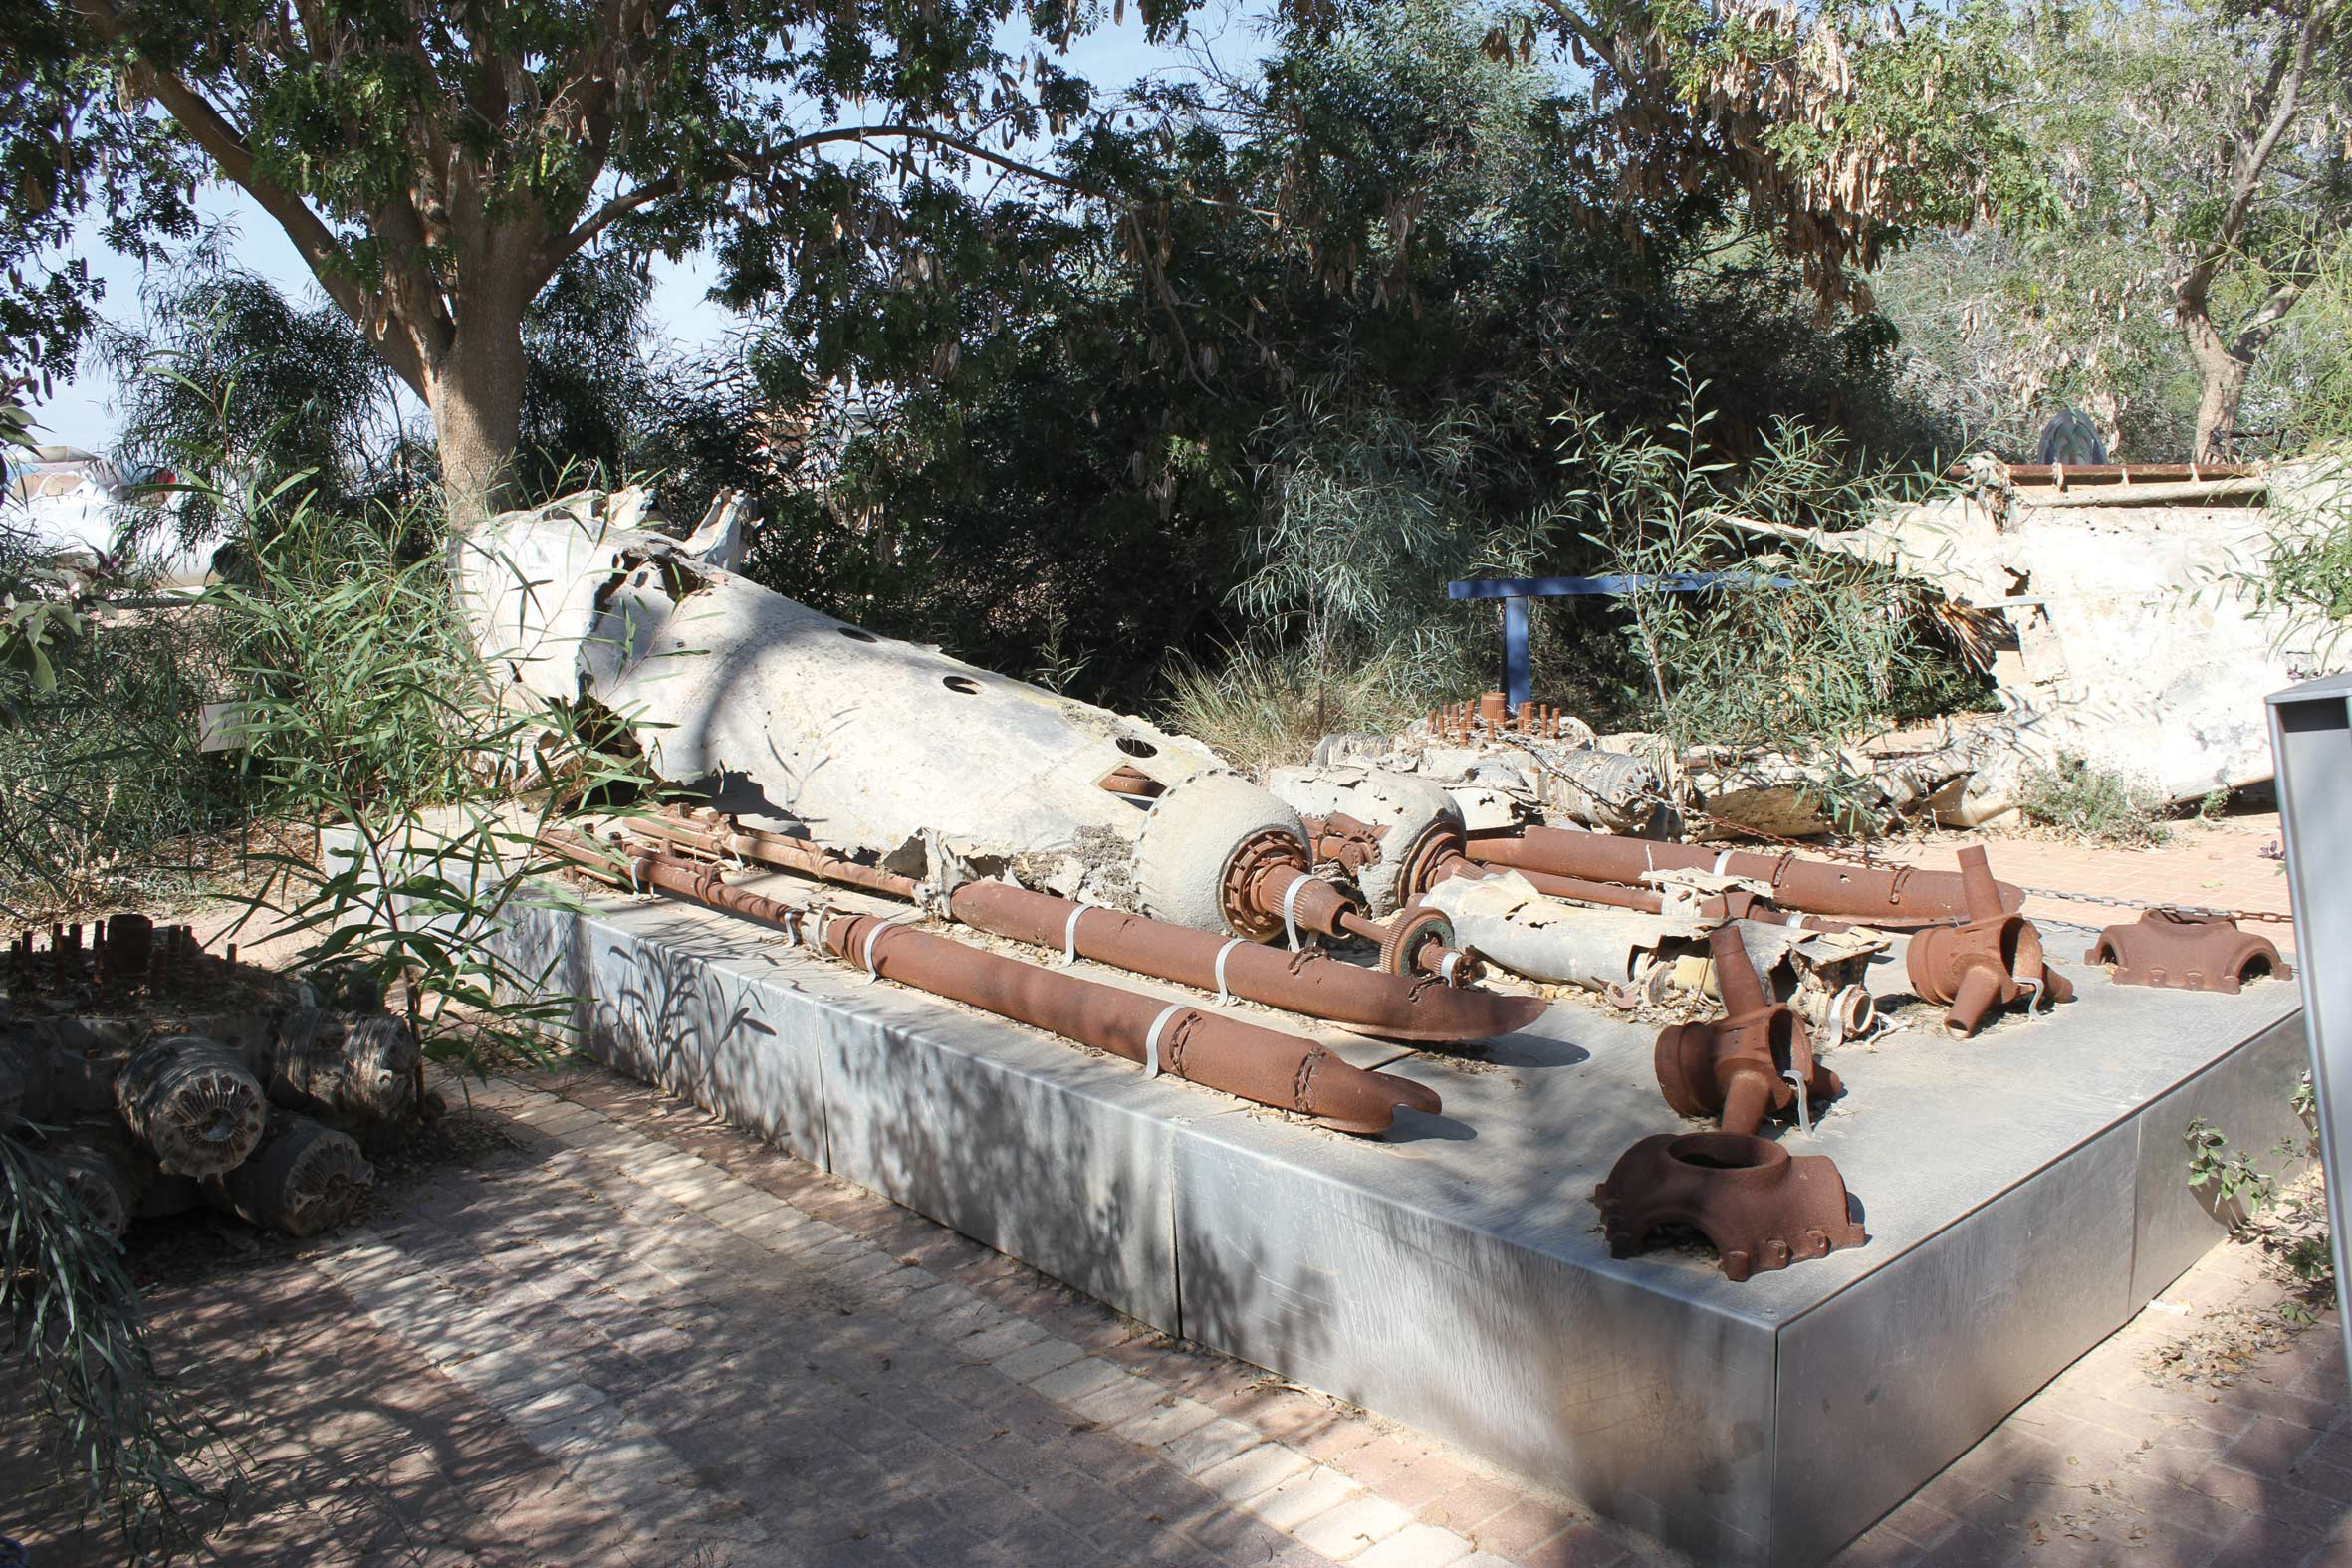 All that remains of the Israeli Beaufighter plane that crashed in the Ashdod sand dunes in 1948, incorporated into a monument at the Israeli Air Force Museum